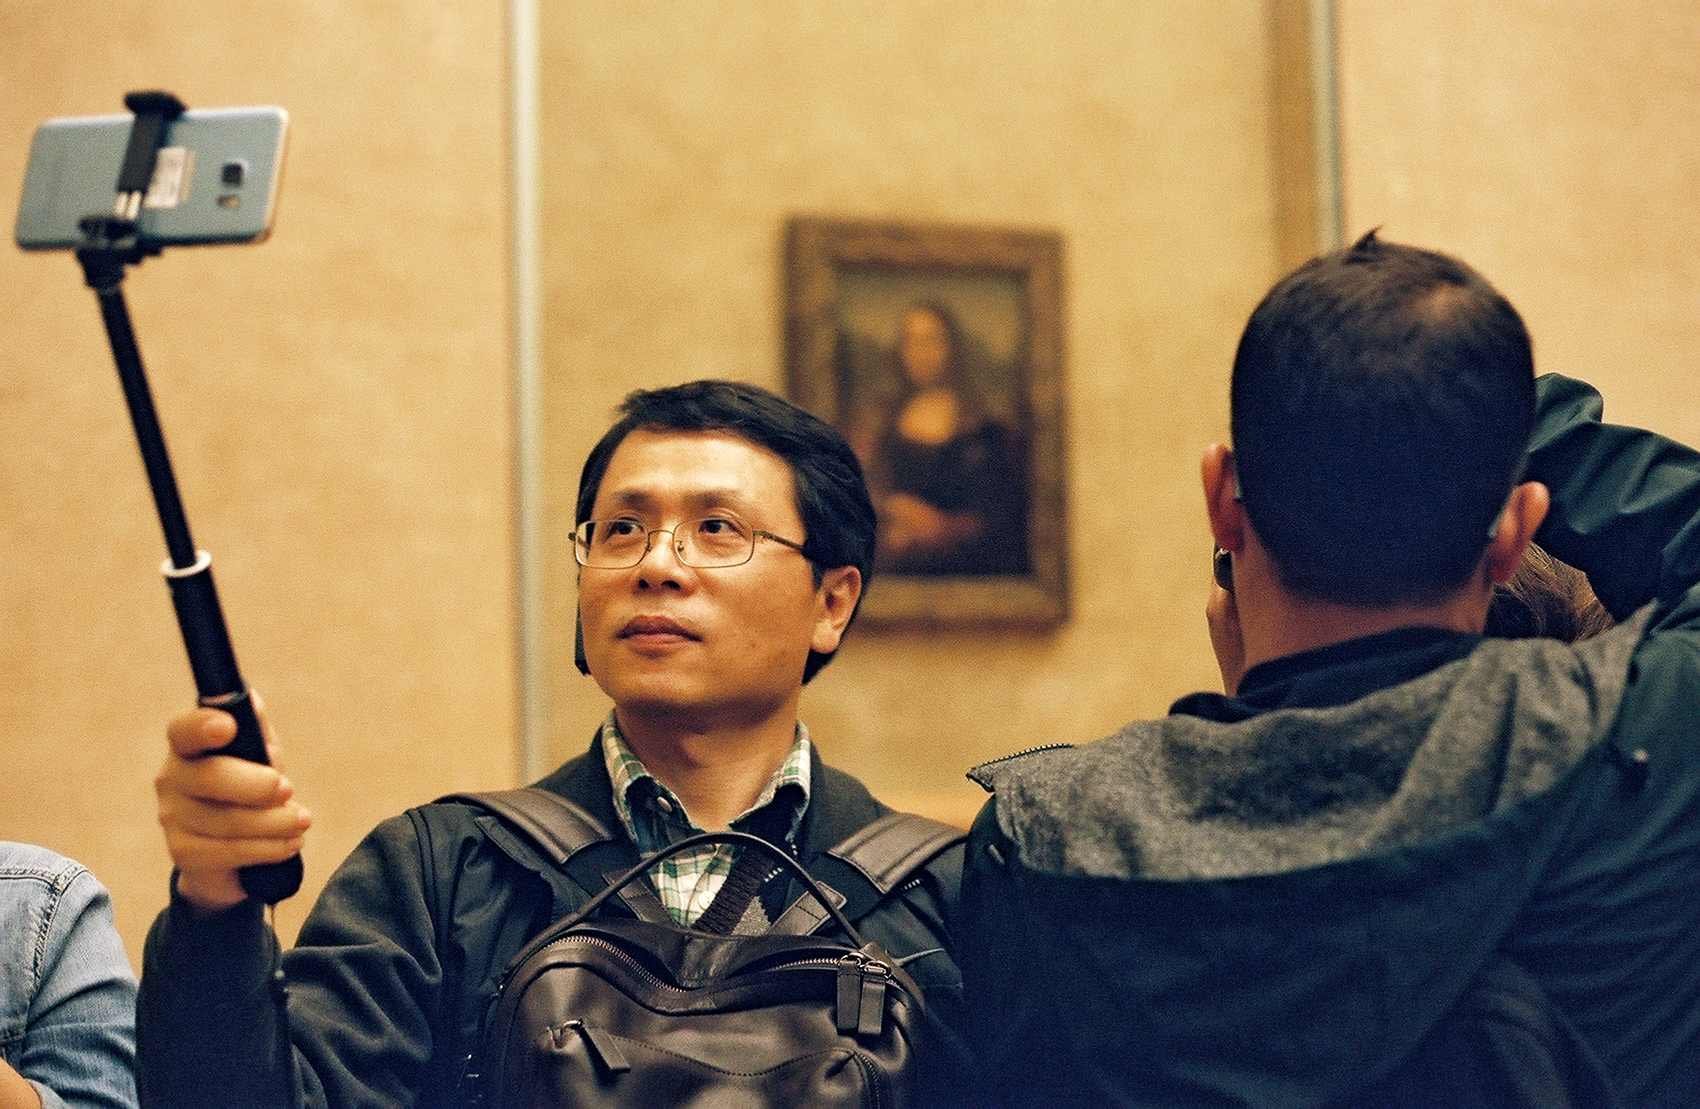 seeing the Mona Lisa is a performance piece